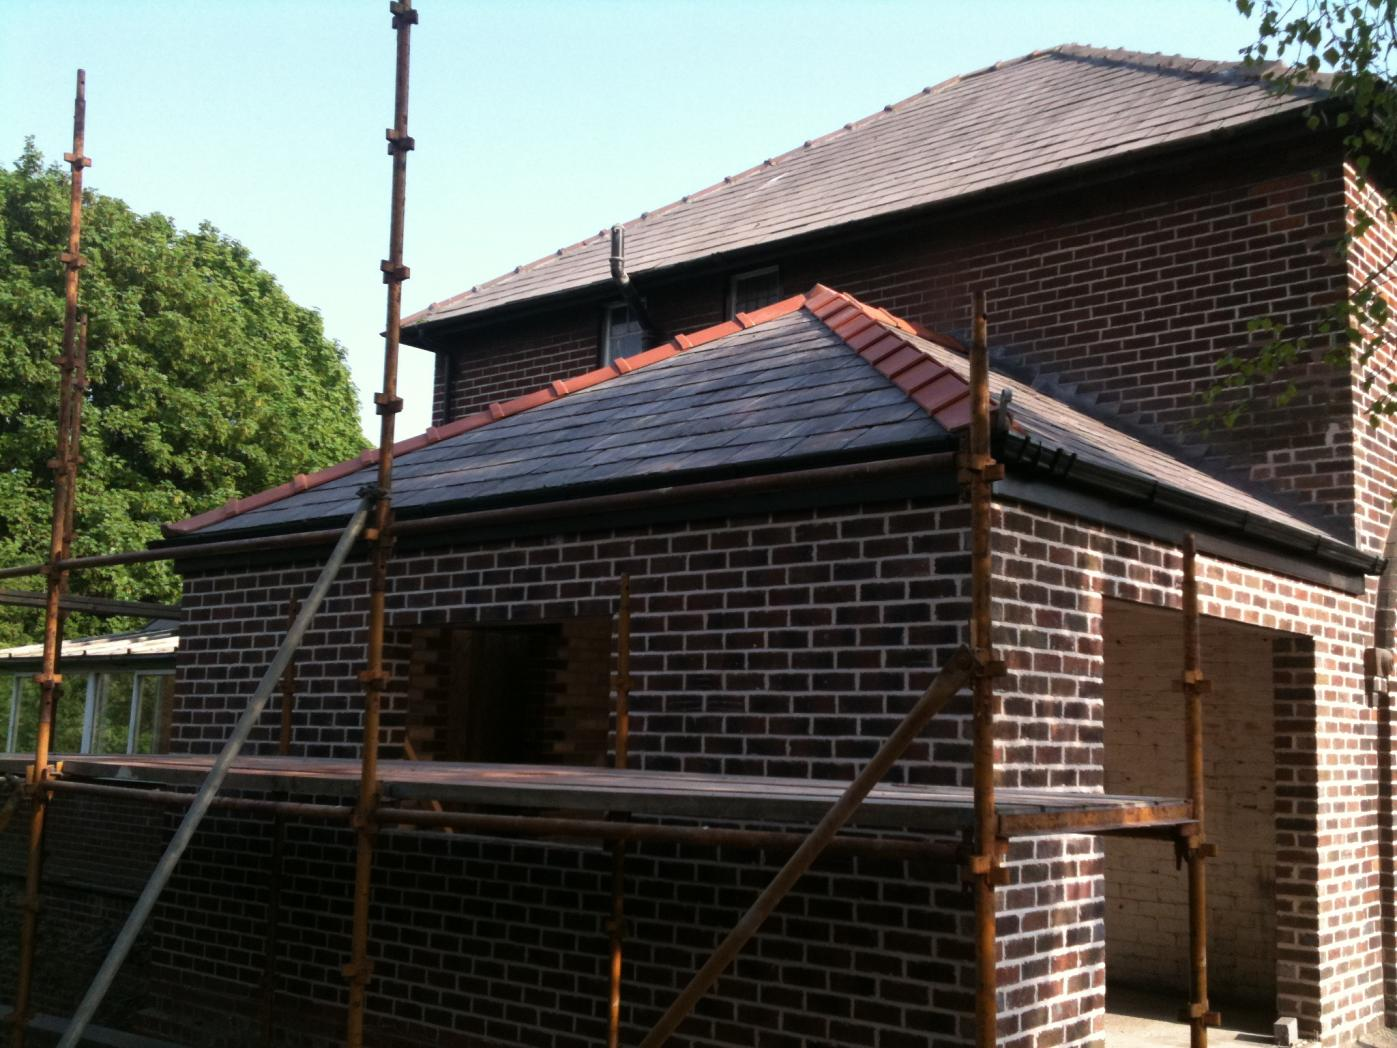 Working on my own roof-img_2138.jpg